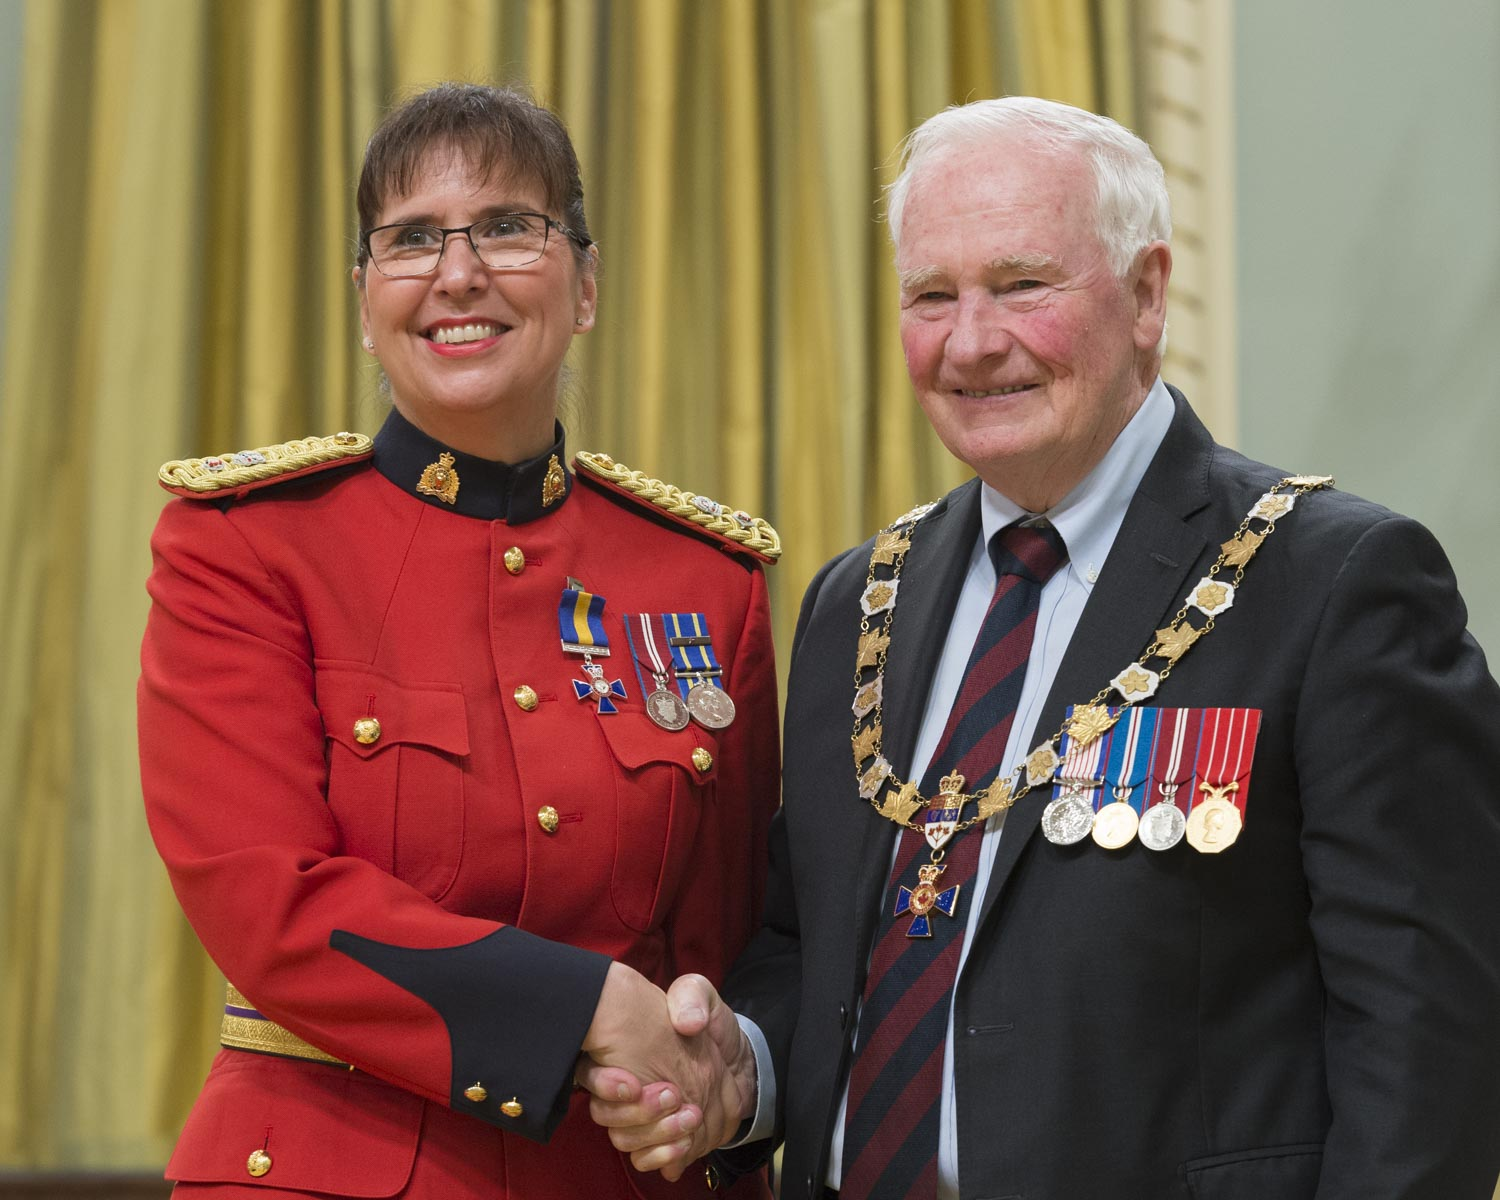 His Excellency presented the Order at the Member level to Superintendent F. Deanne Burleigh, M.O.M., of the Royal Canadian Mounted Police, Chilliwack, British Columbia.